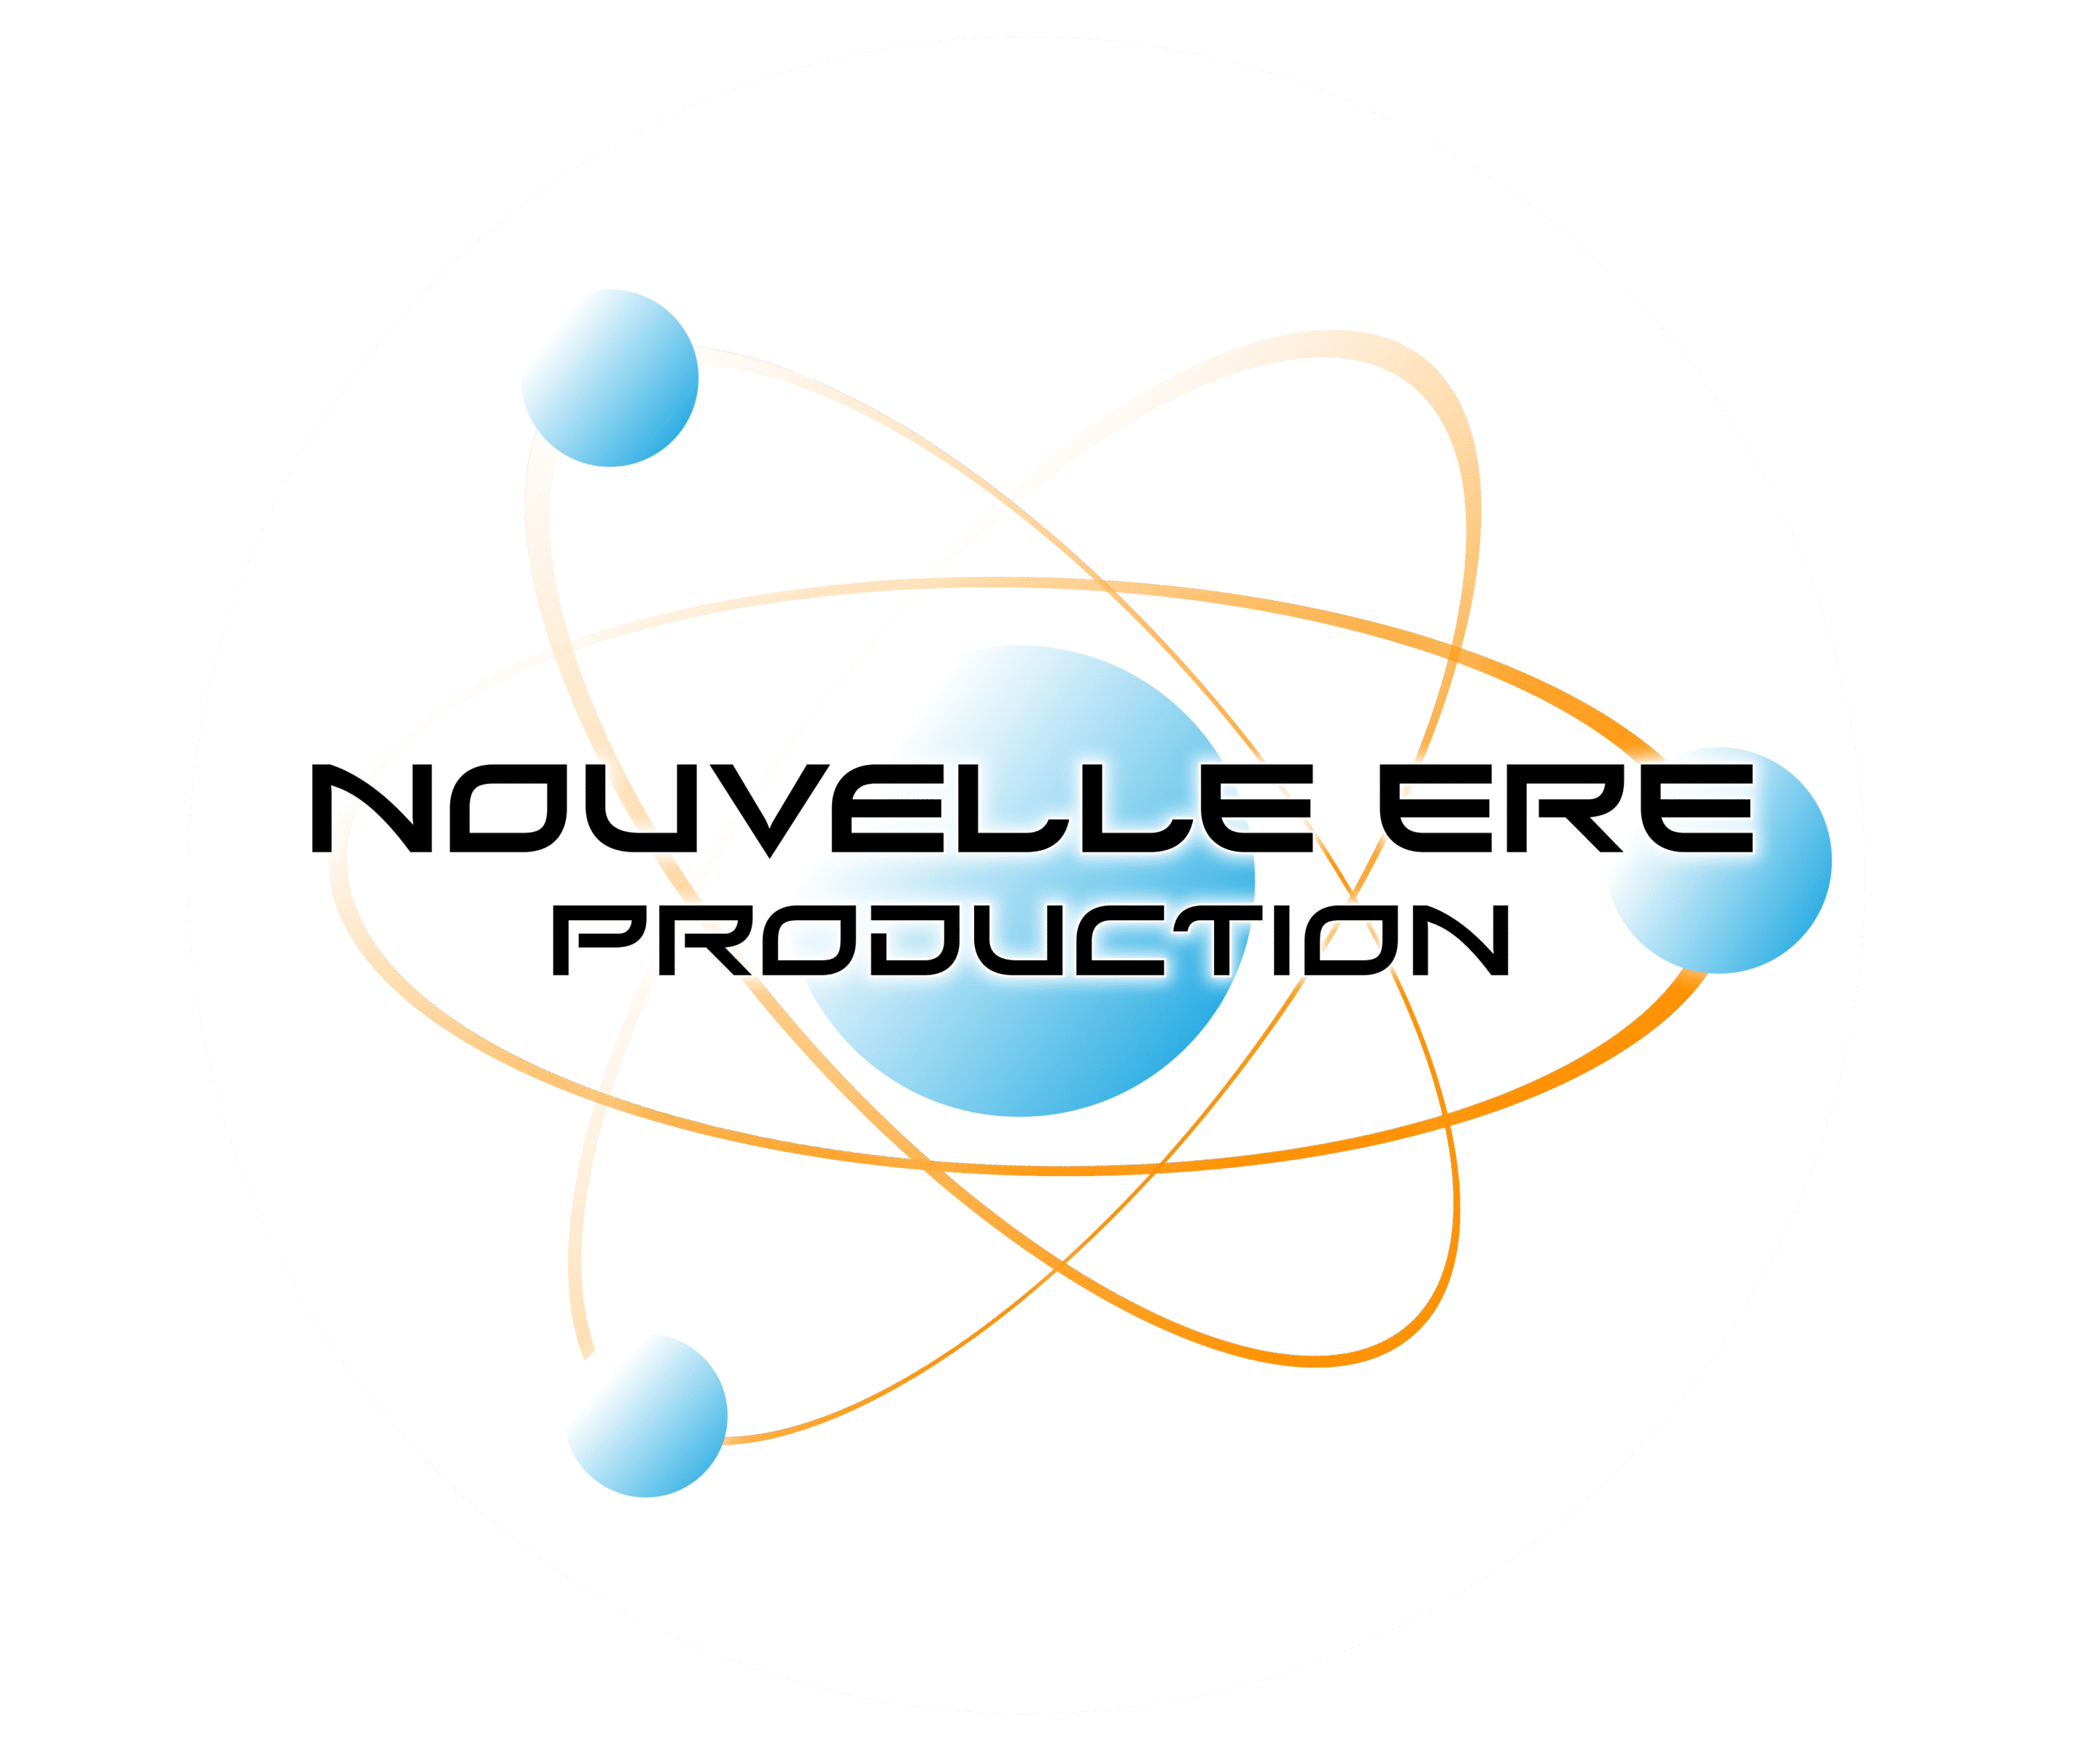 Nouvelle ère production